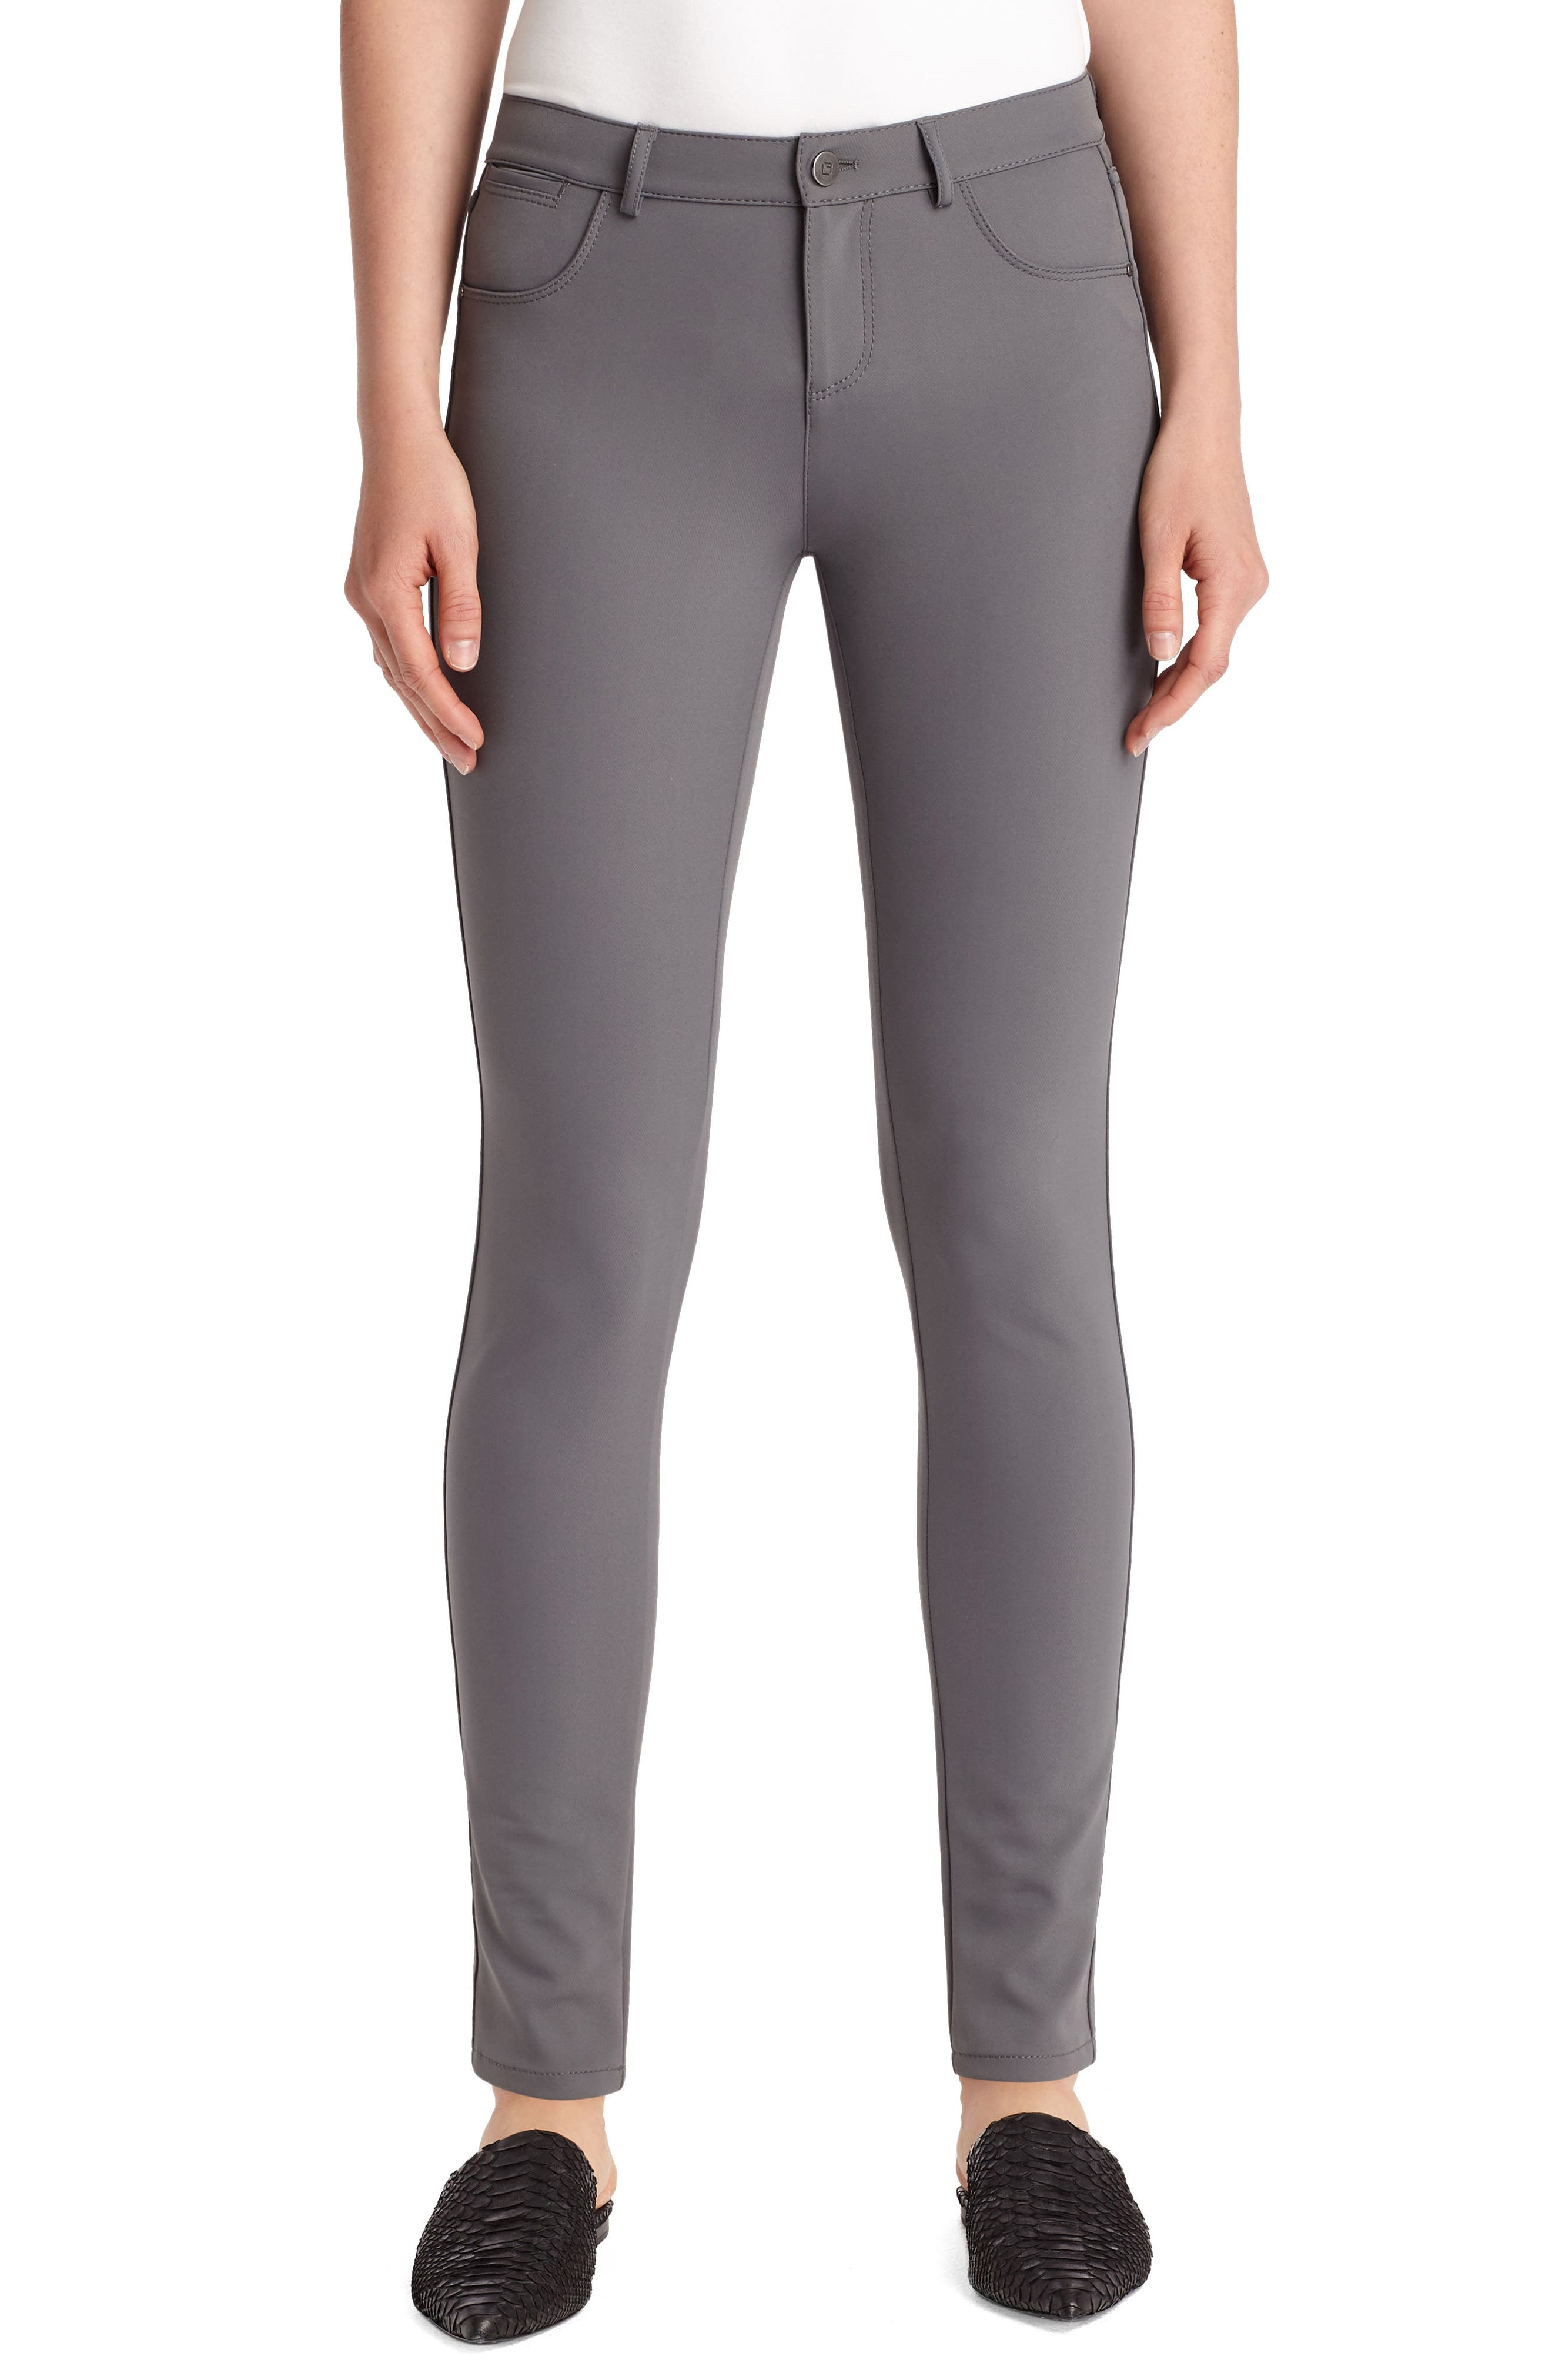 Mercer Acclaimed Stretch Mid-Rise Skinny Jeans in Shale